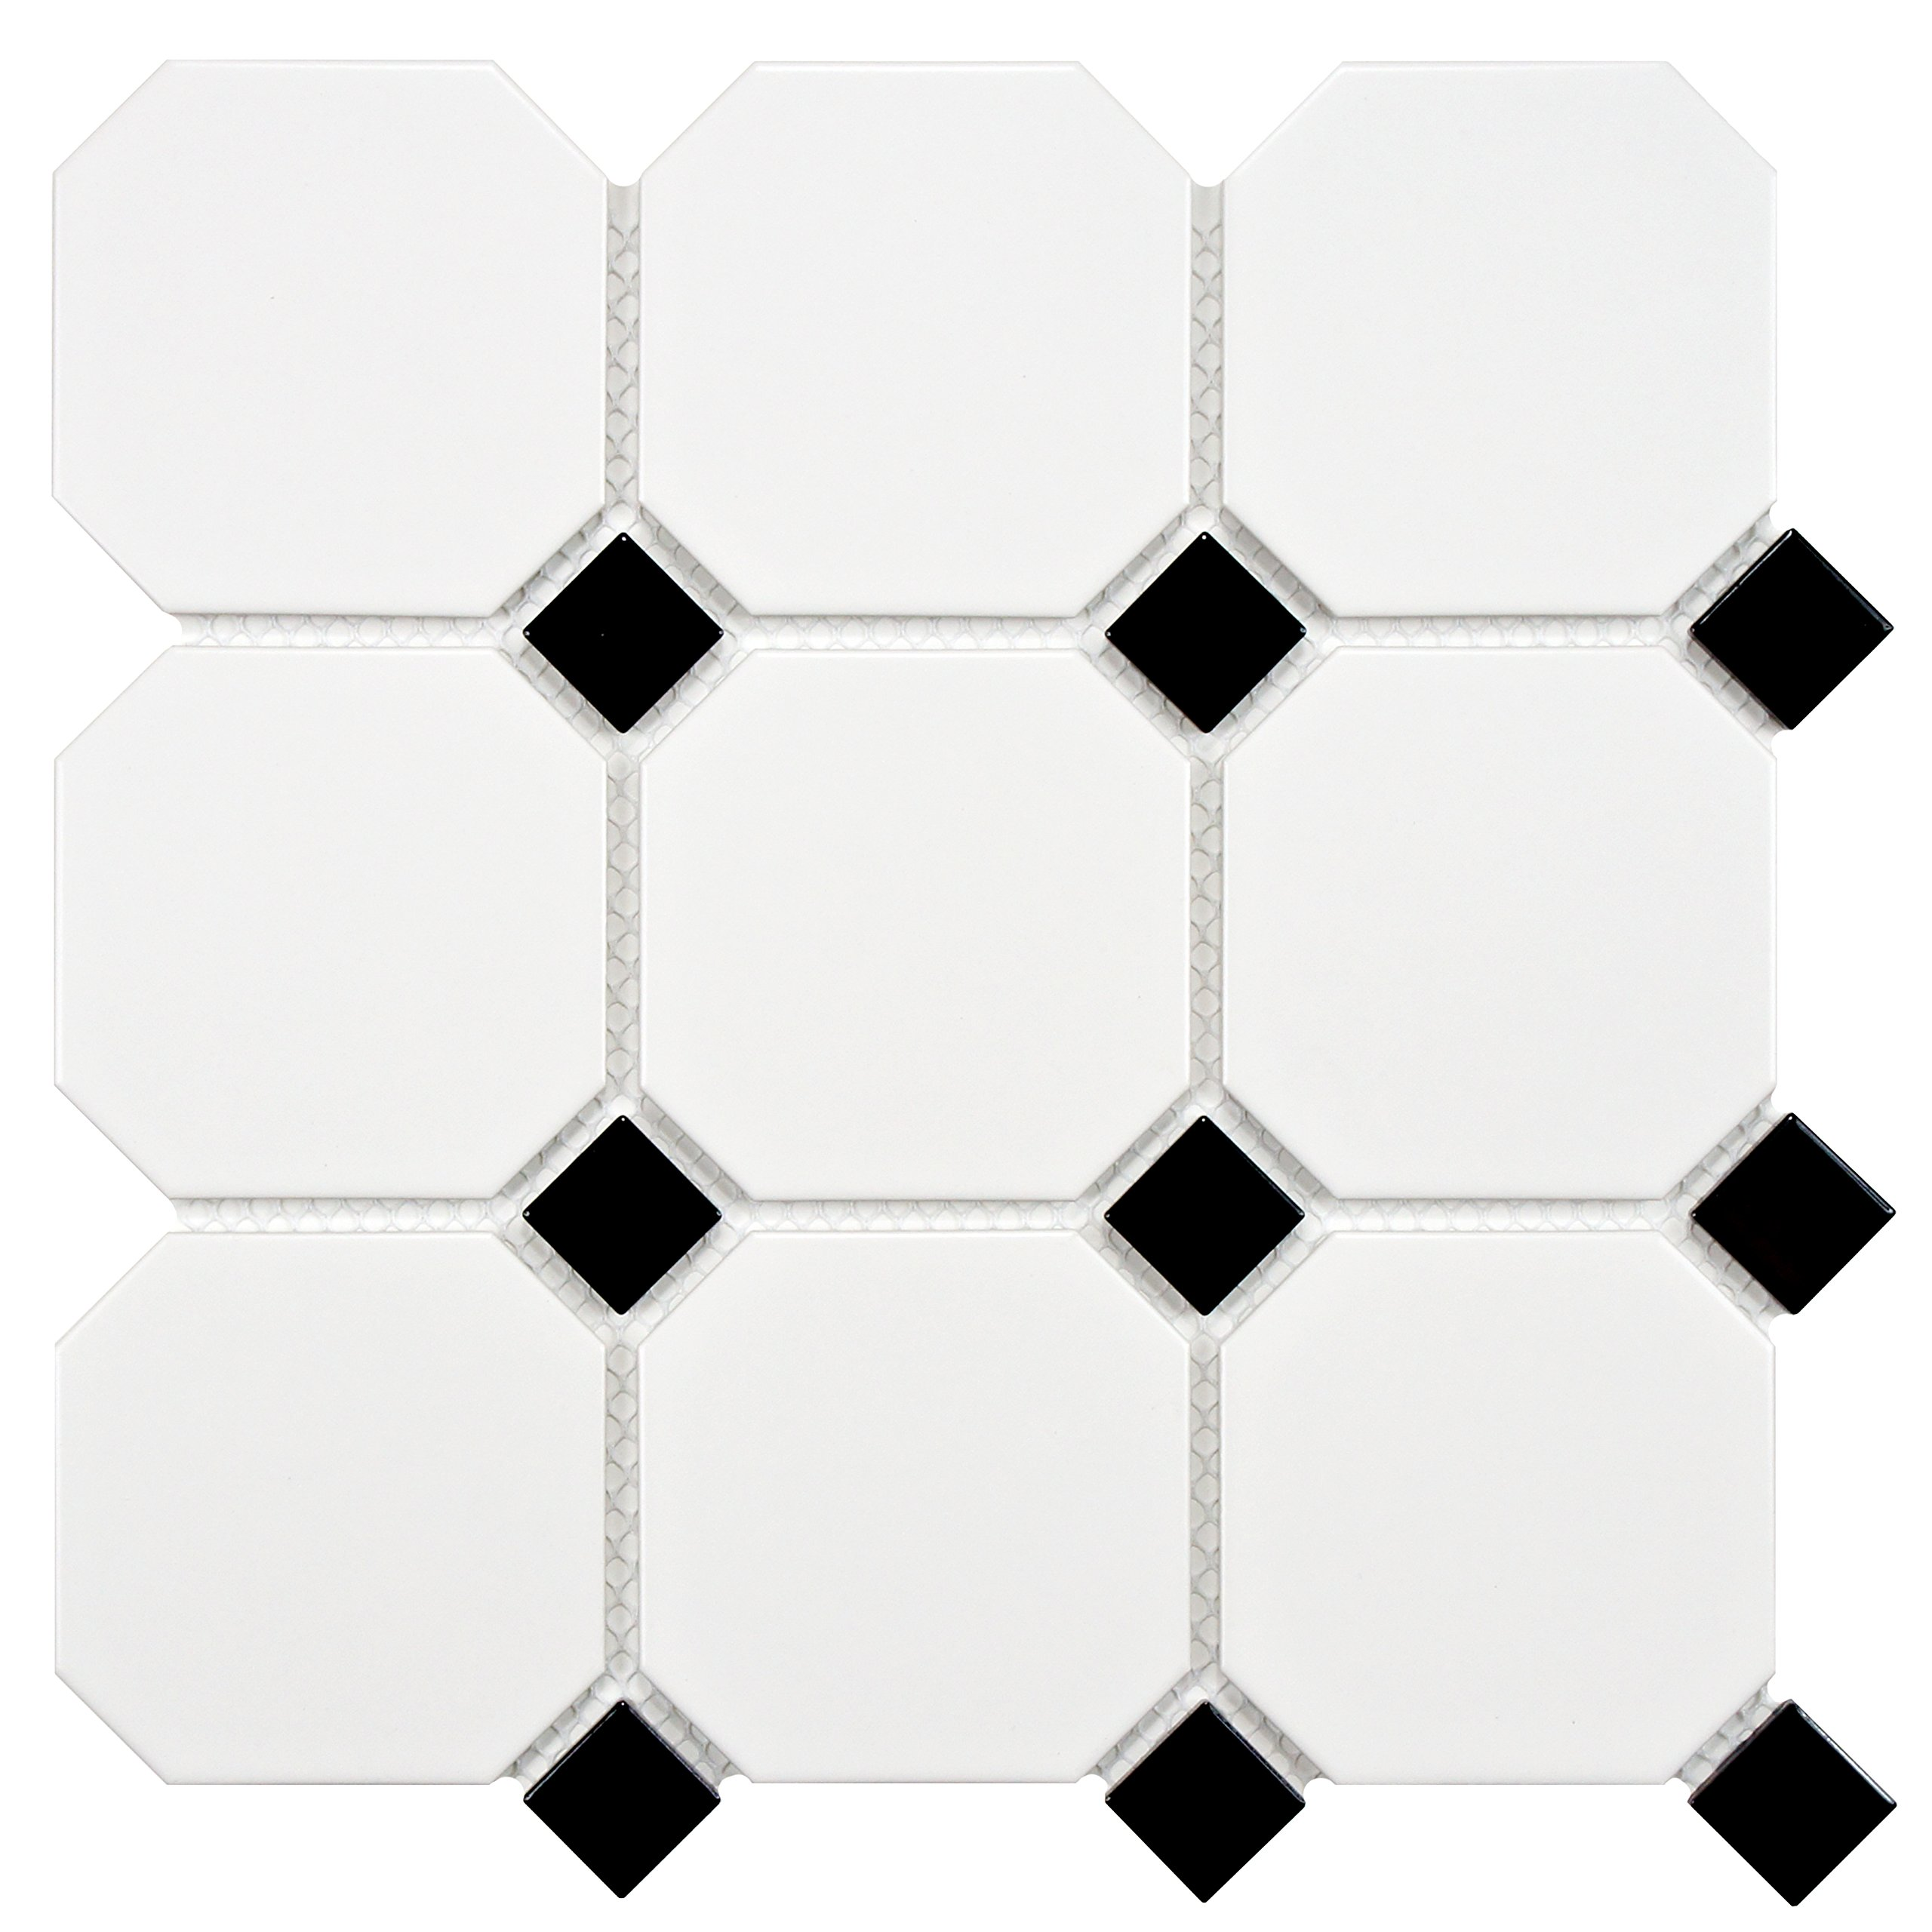 SomerTile FXLM4OWD Retro Super Octagon Porcelain Mosaic Floor and Wall Tile, 11.625'' x 11.625'', Matte White with Dot by SOMERTILE